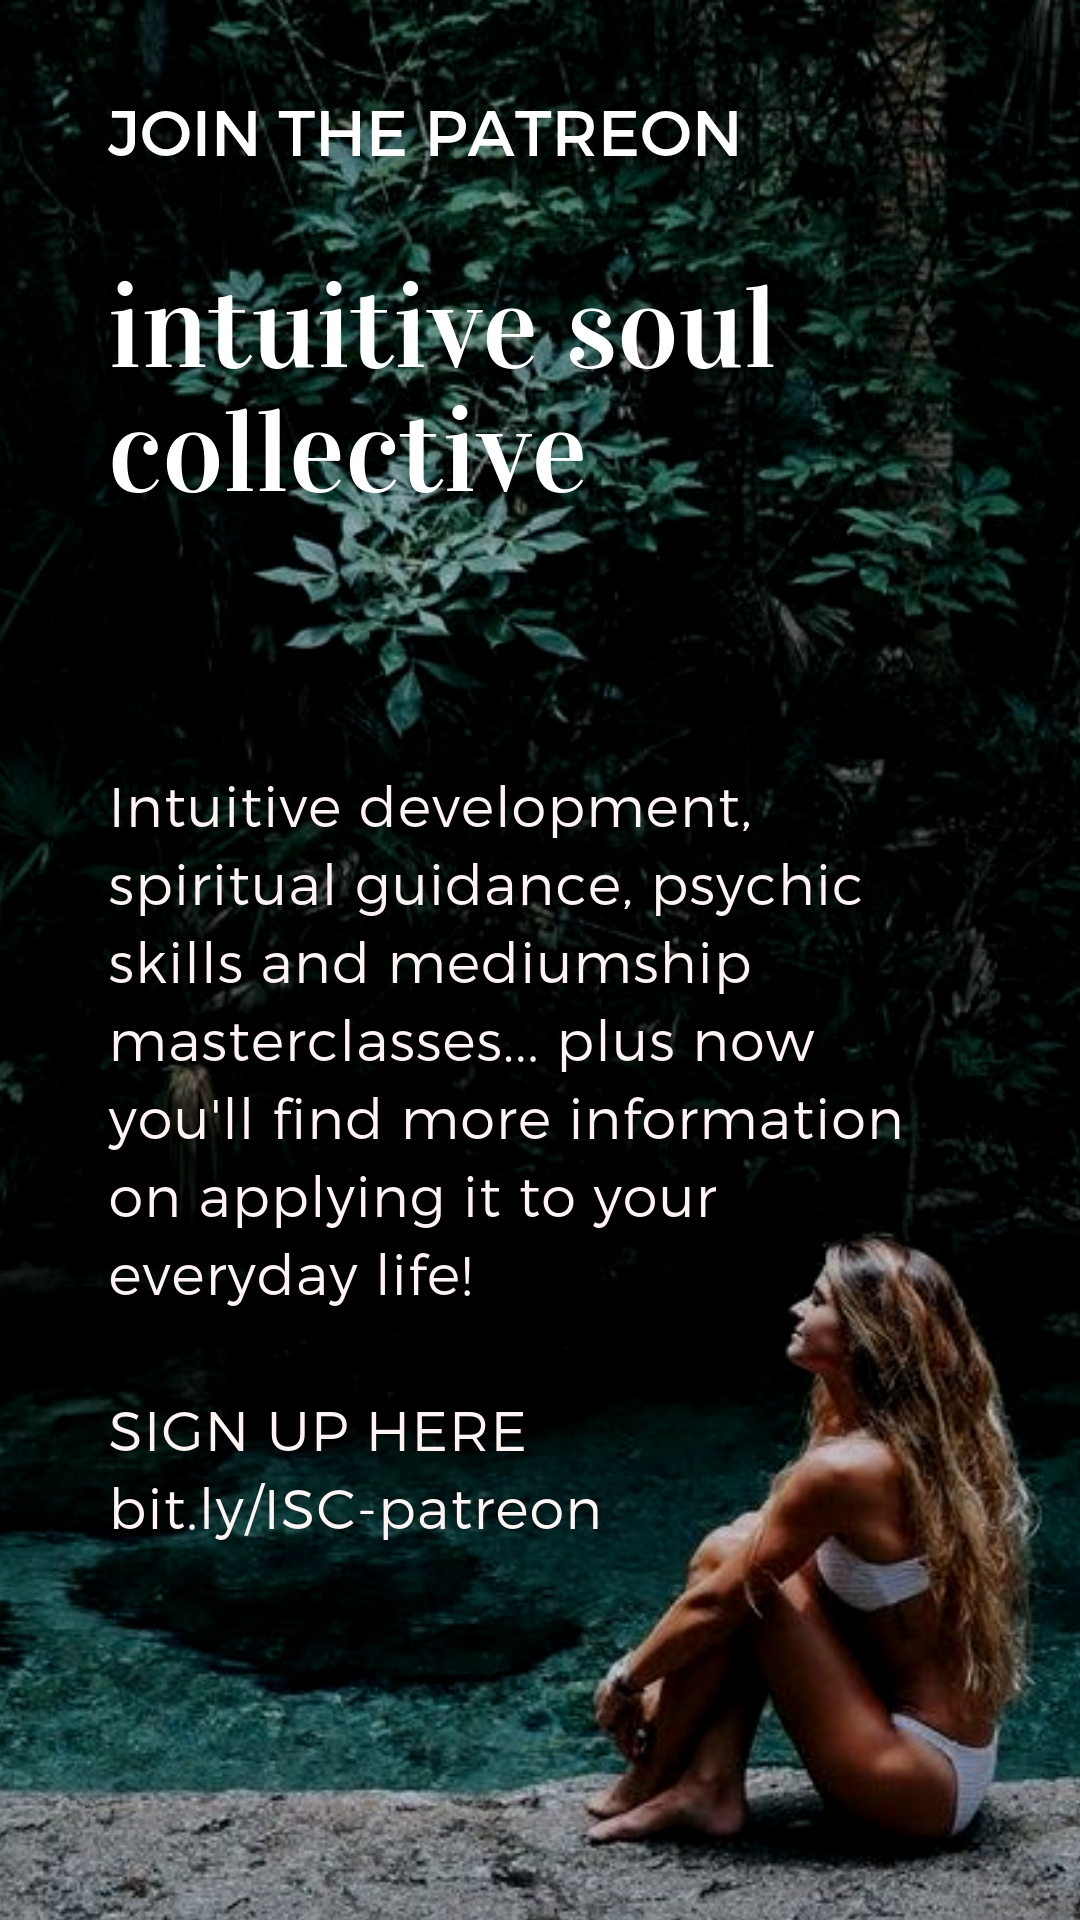 Intuitive Soul Collective Patreon Channel!